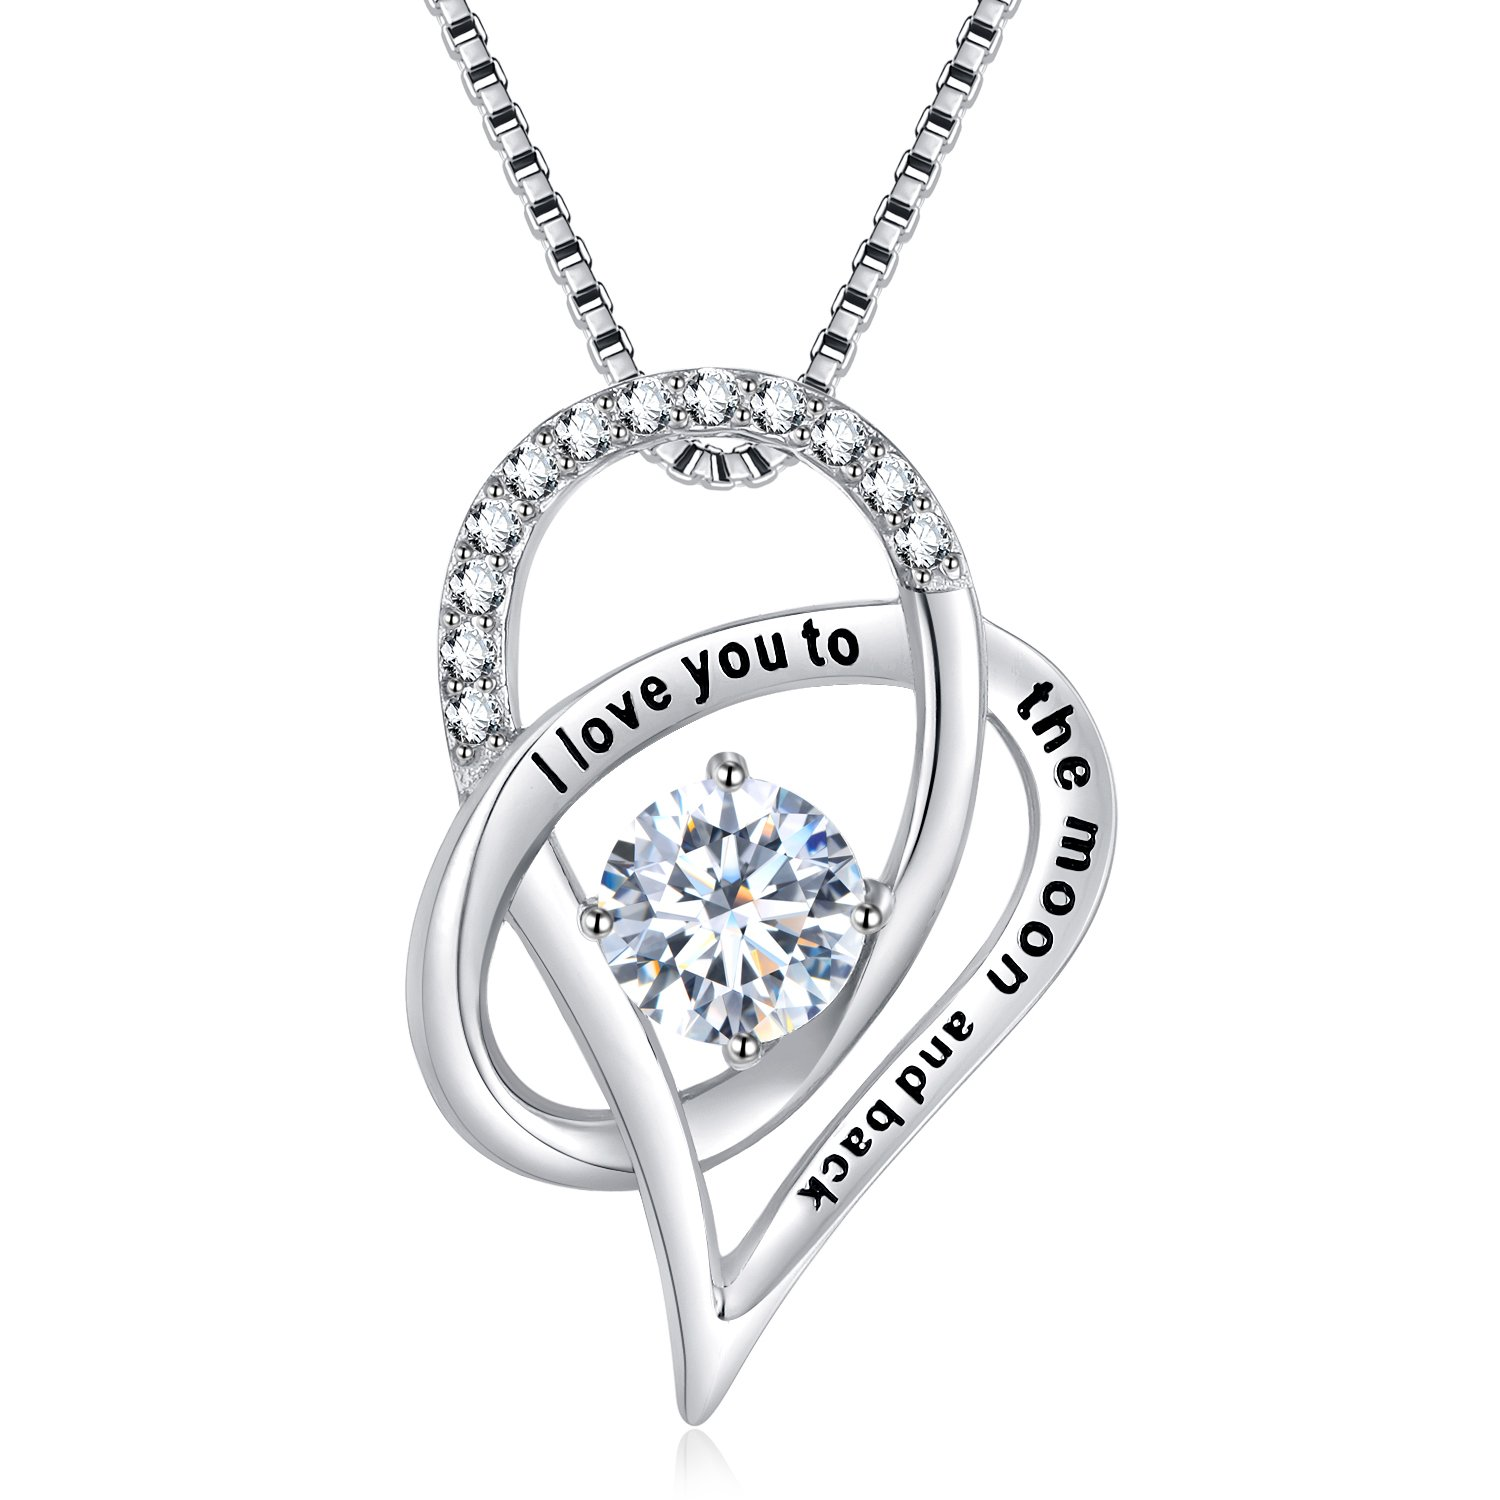 SOMEN TUNGSTEN Sterling Silver I Love You to The Moon and Back Cubic Zirconia Necklace Heart Pendant